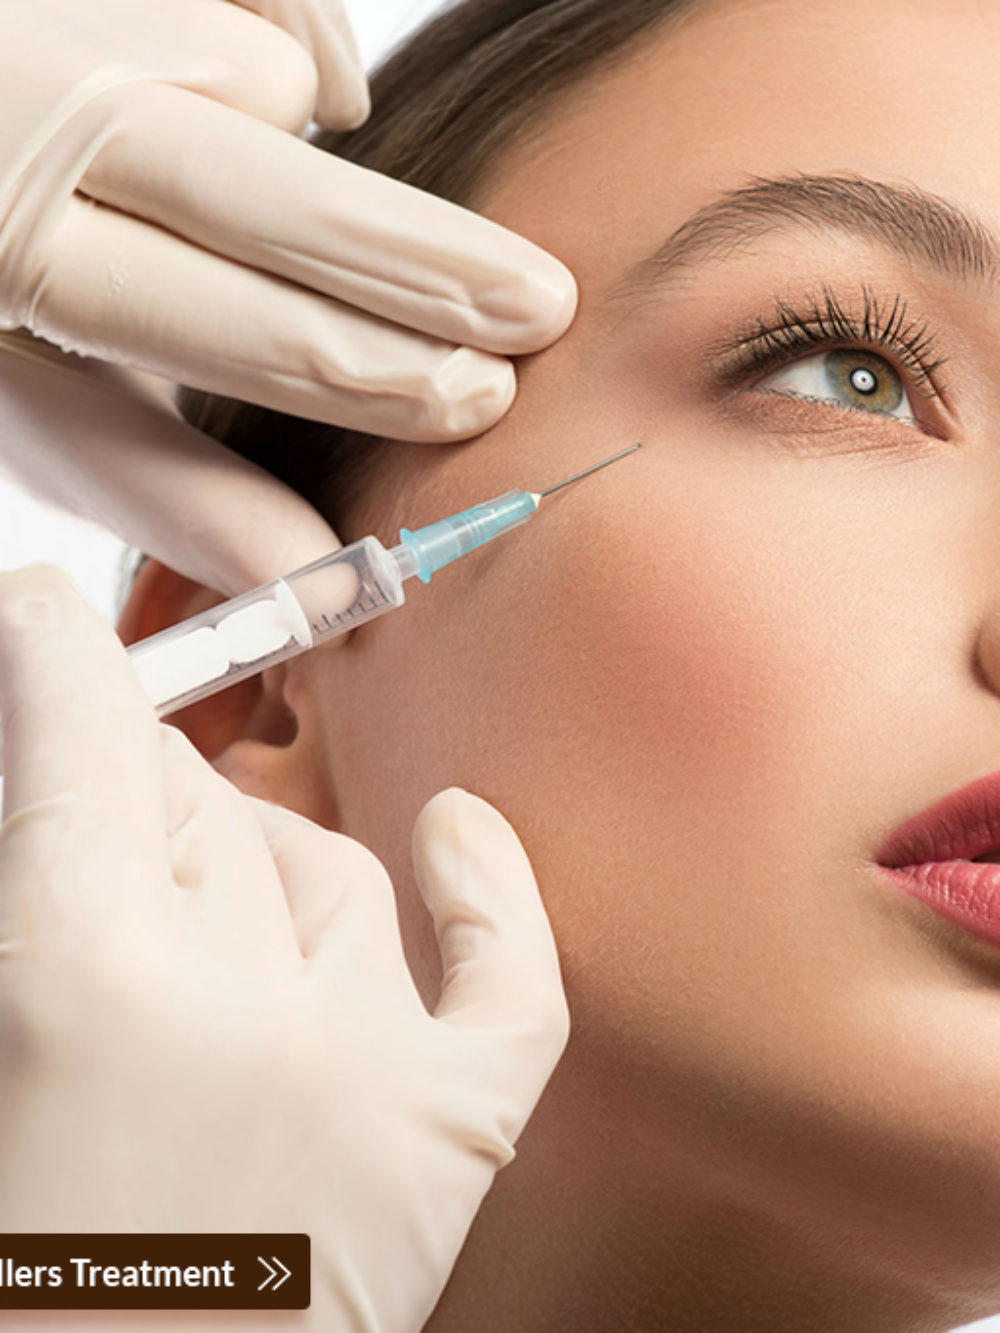 Truths-About-Dermal-Fillers